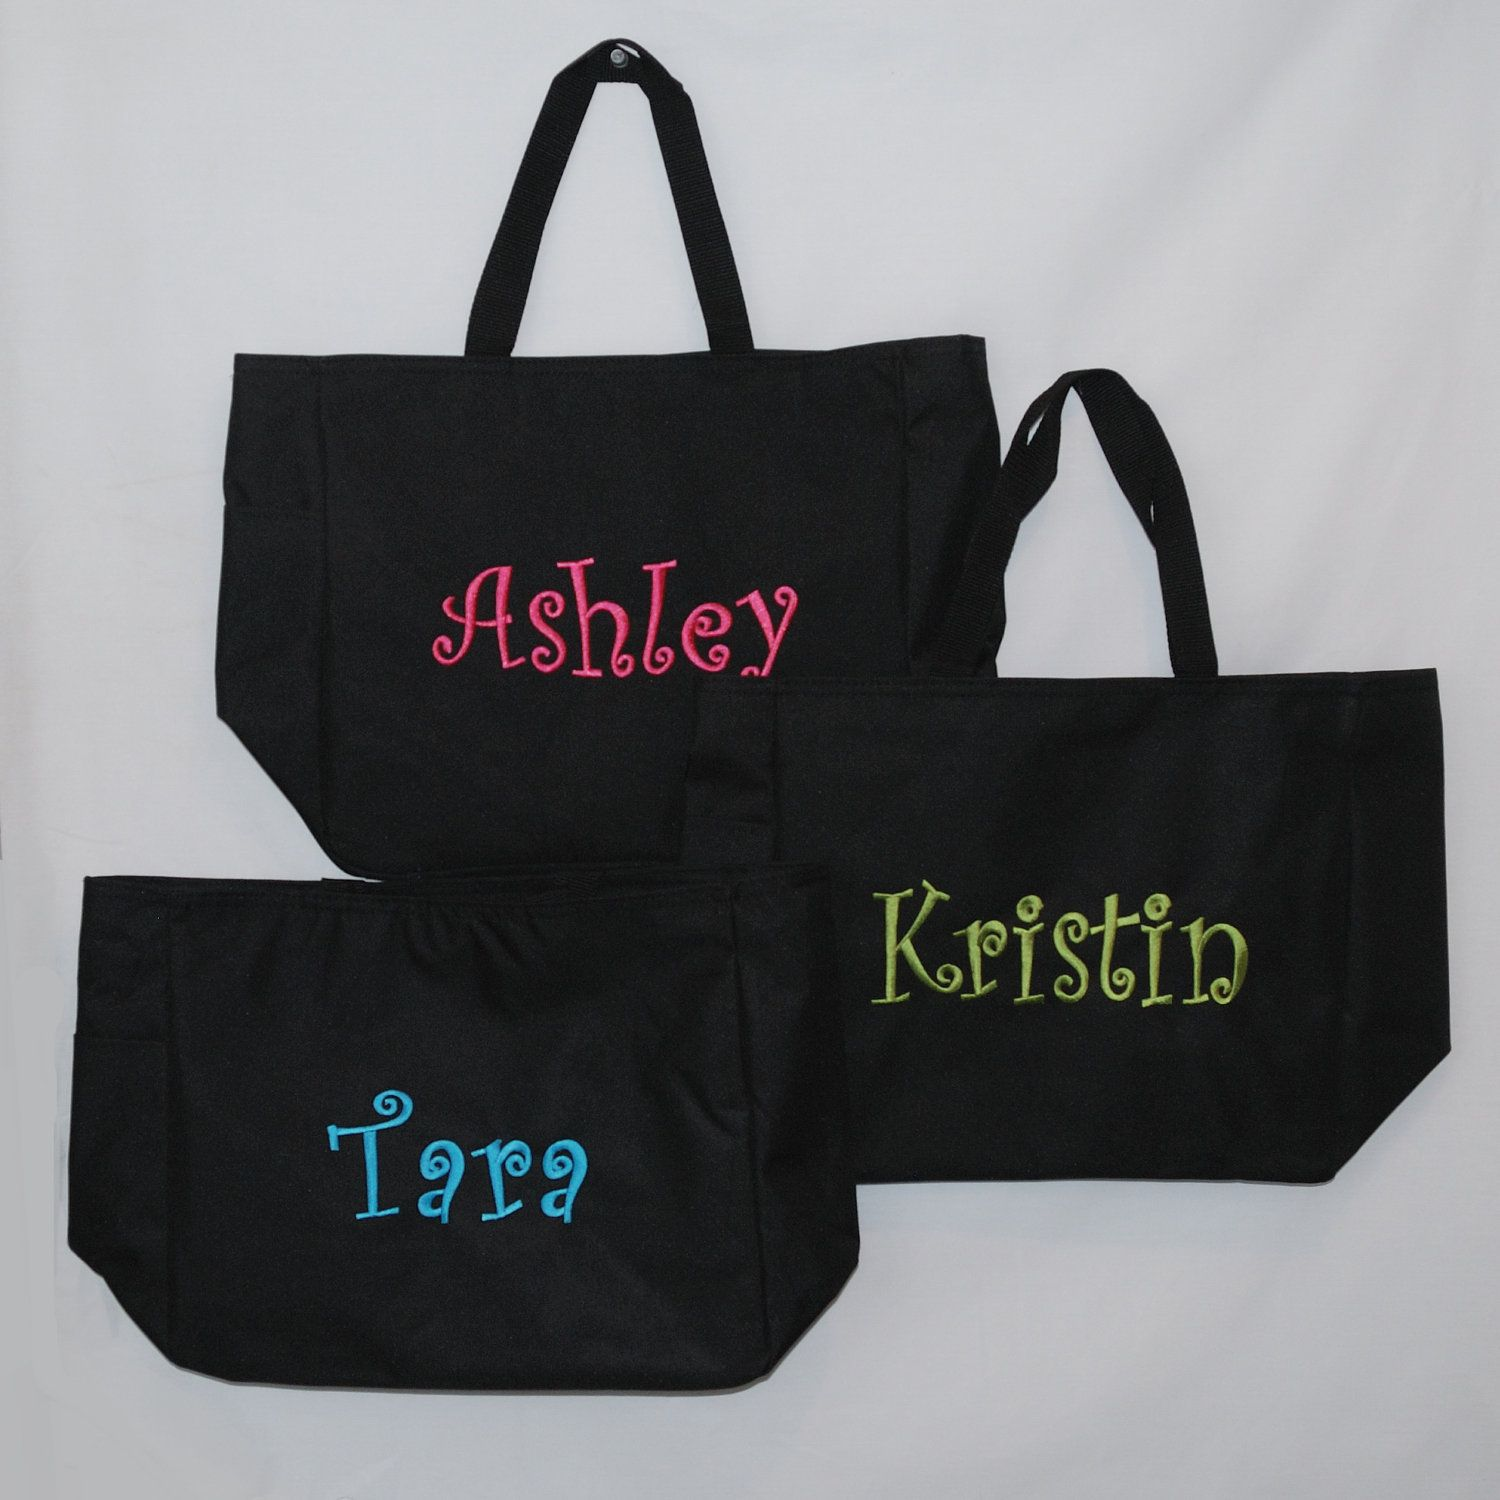 3 Large Personalized Tote Bag Beach Bag by StitchingDesigns. $45.00, via Etsy.